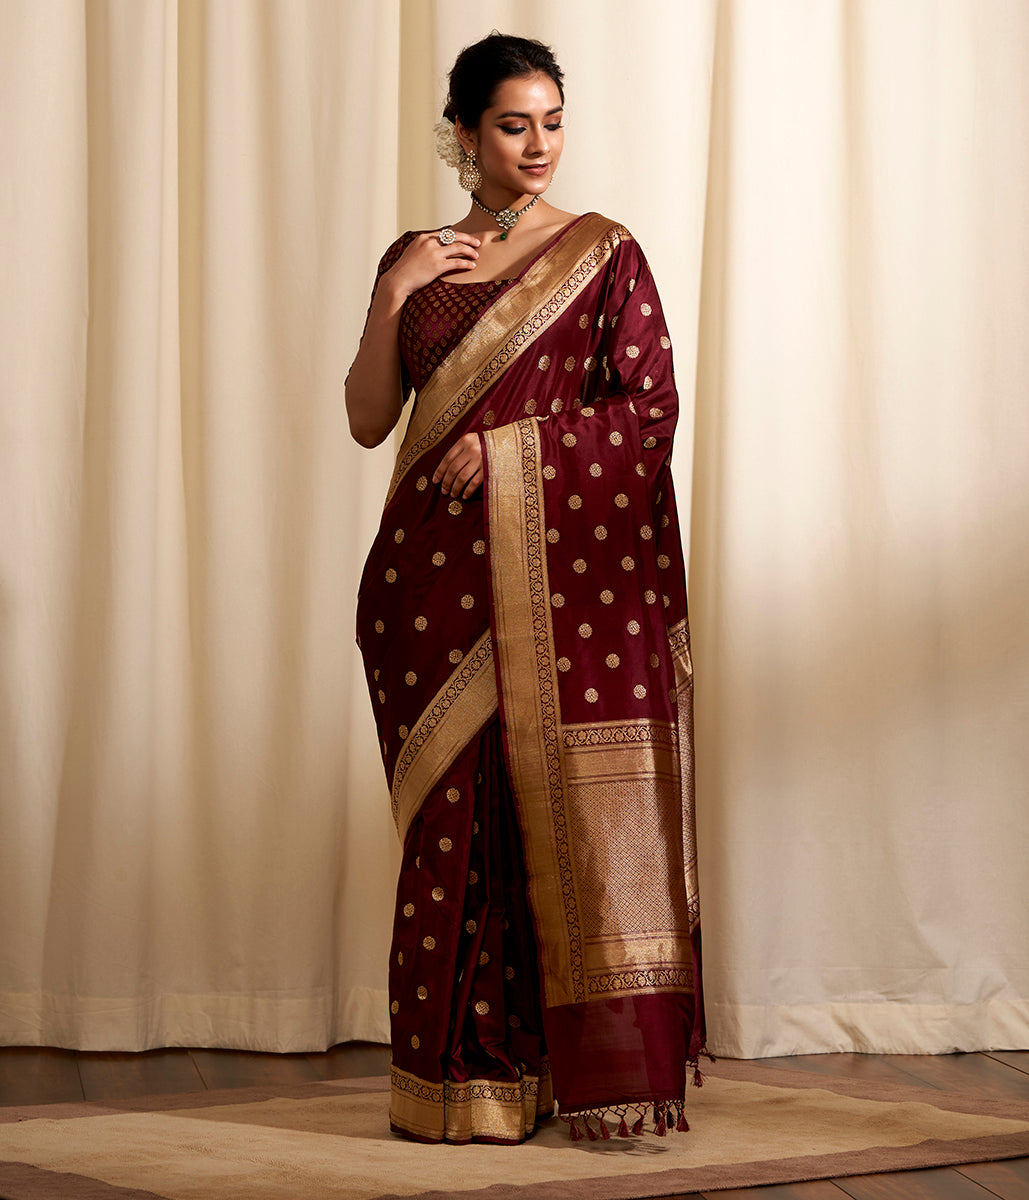 Handwoven asgarfi boota banarasi saree in an mahroon and brown dual tone